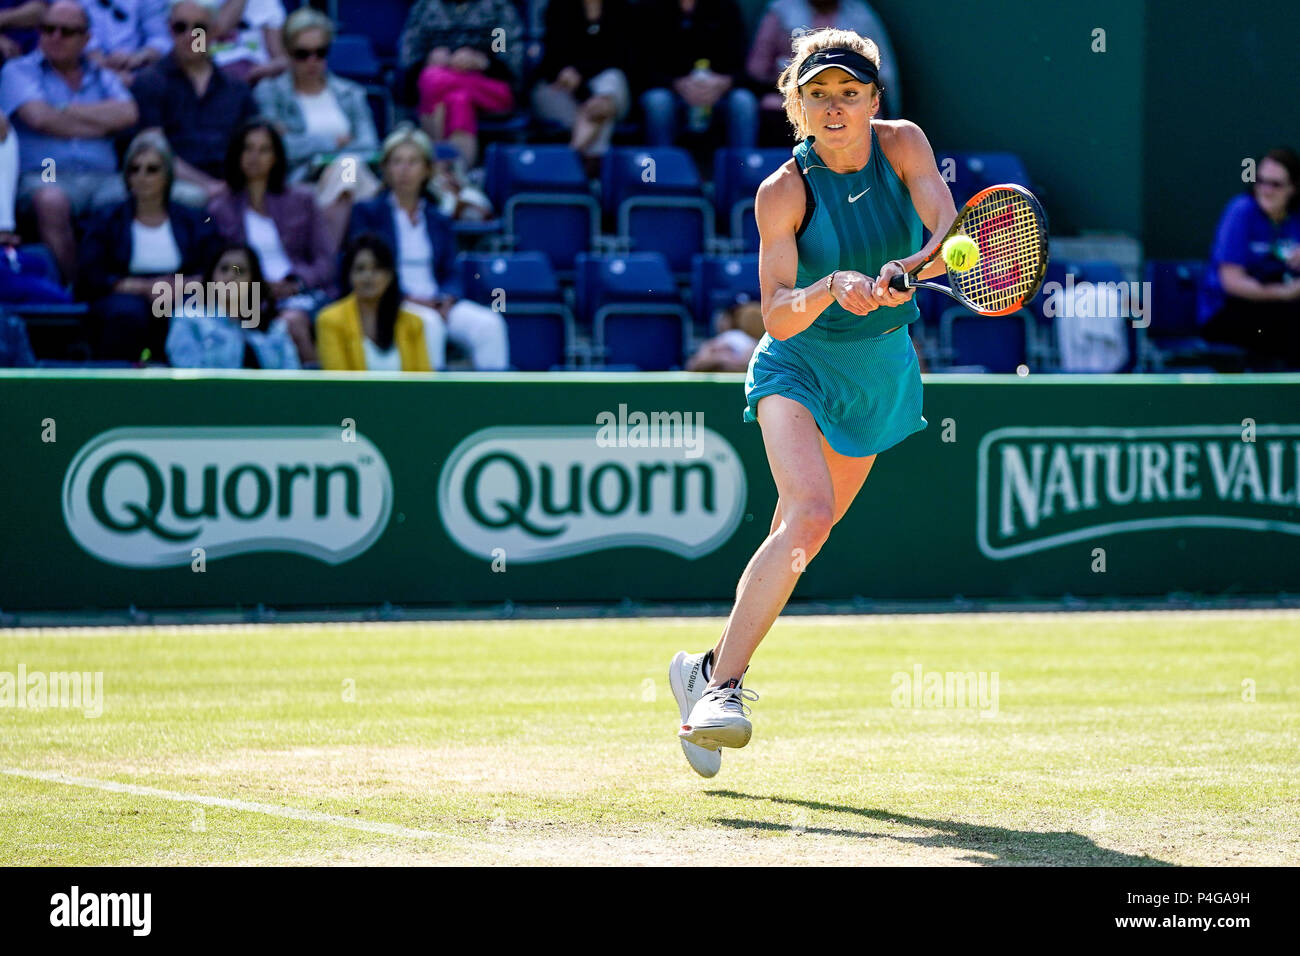 Edgbaston Priory Club, Birmingham, UK. 22nd June, 2018. Nature Valley Classic Tennis; Elina Svitolina (UKR) hits a running backhand in her match against Mihaela Buzarnescu (ROU) Credit: Action Plus Sports/Alamy Live News - Stock Image